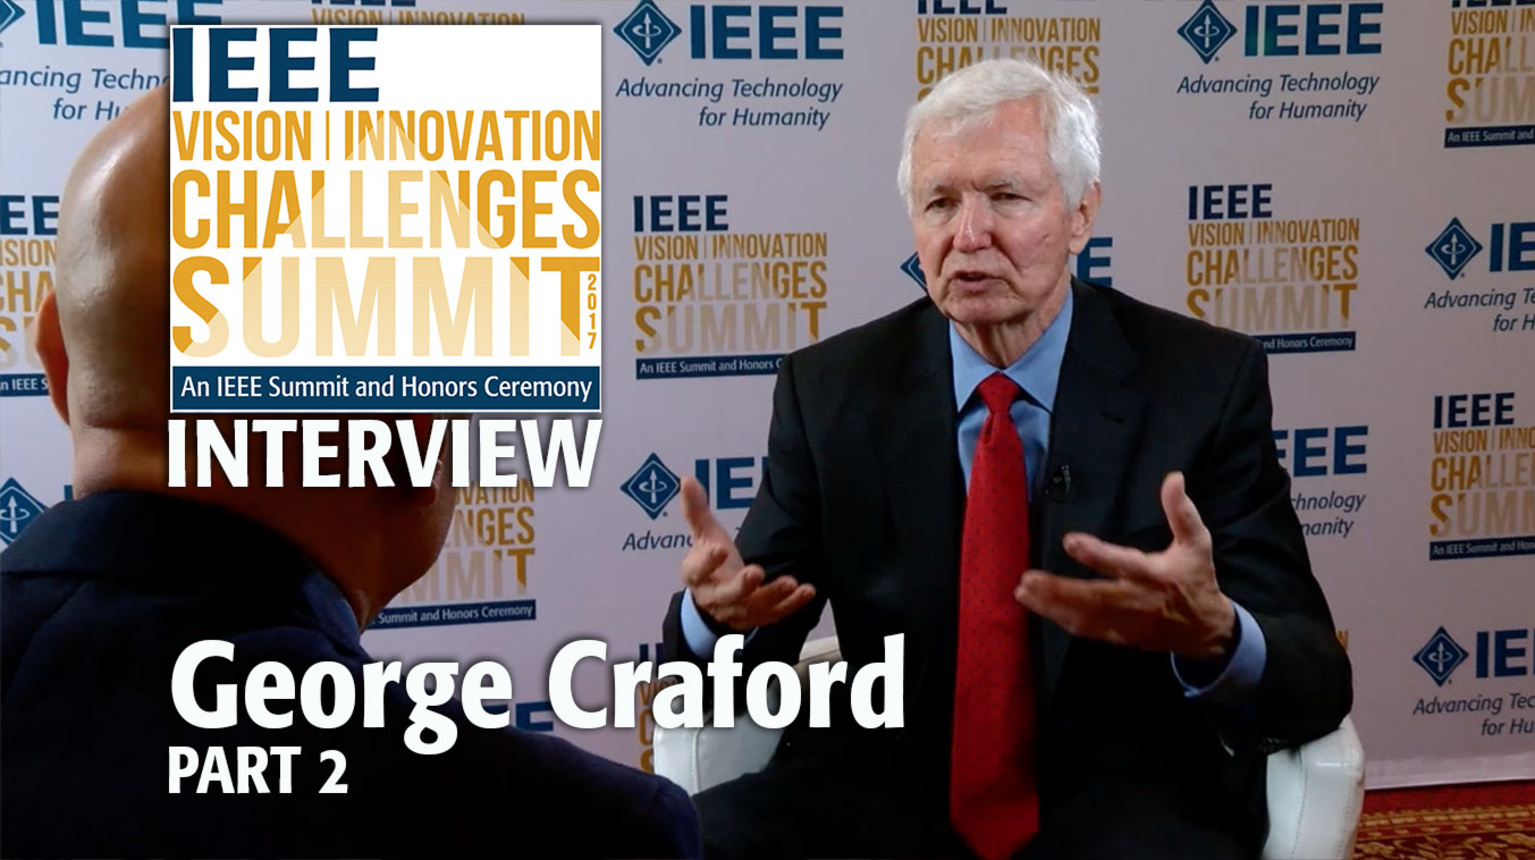 Interview with George Craford, Part 2 - IEEE VIC Summit 2017